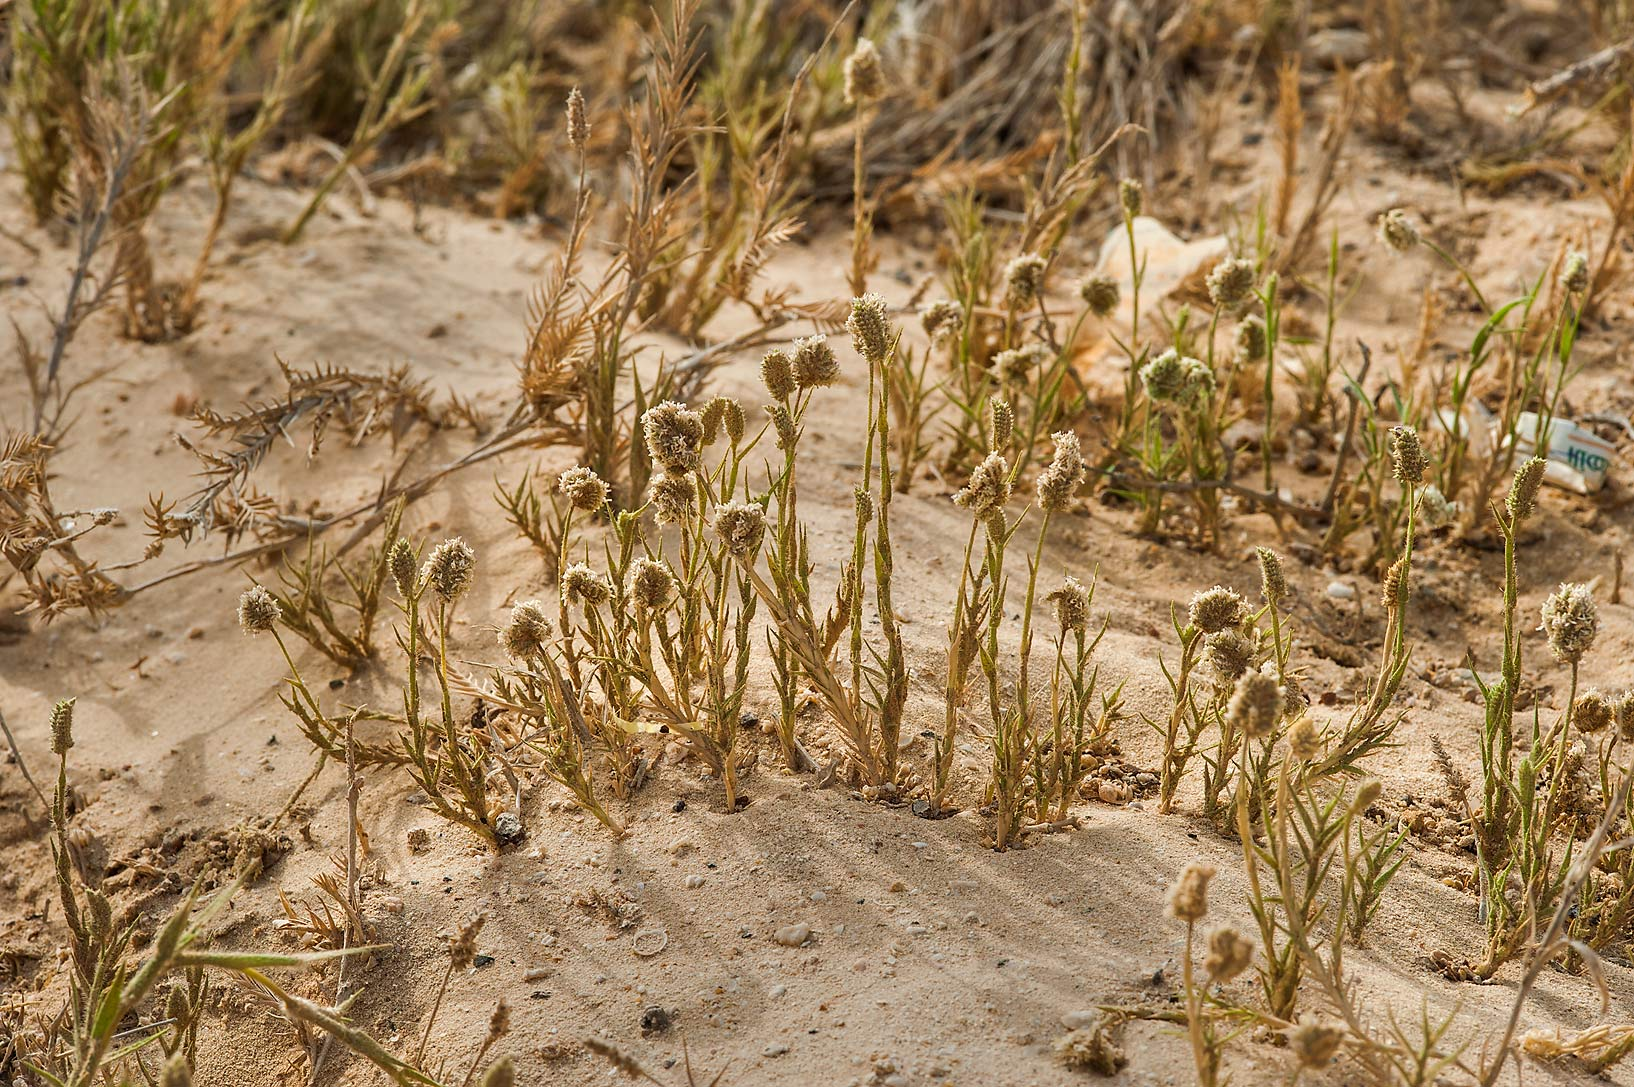 Common salt grass (Aeluropus lagopoides) in sand...Samra, near the border. Southern Qatar